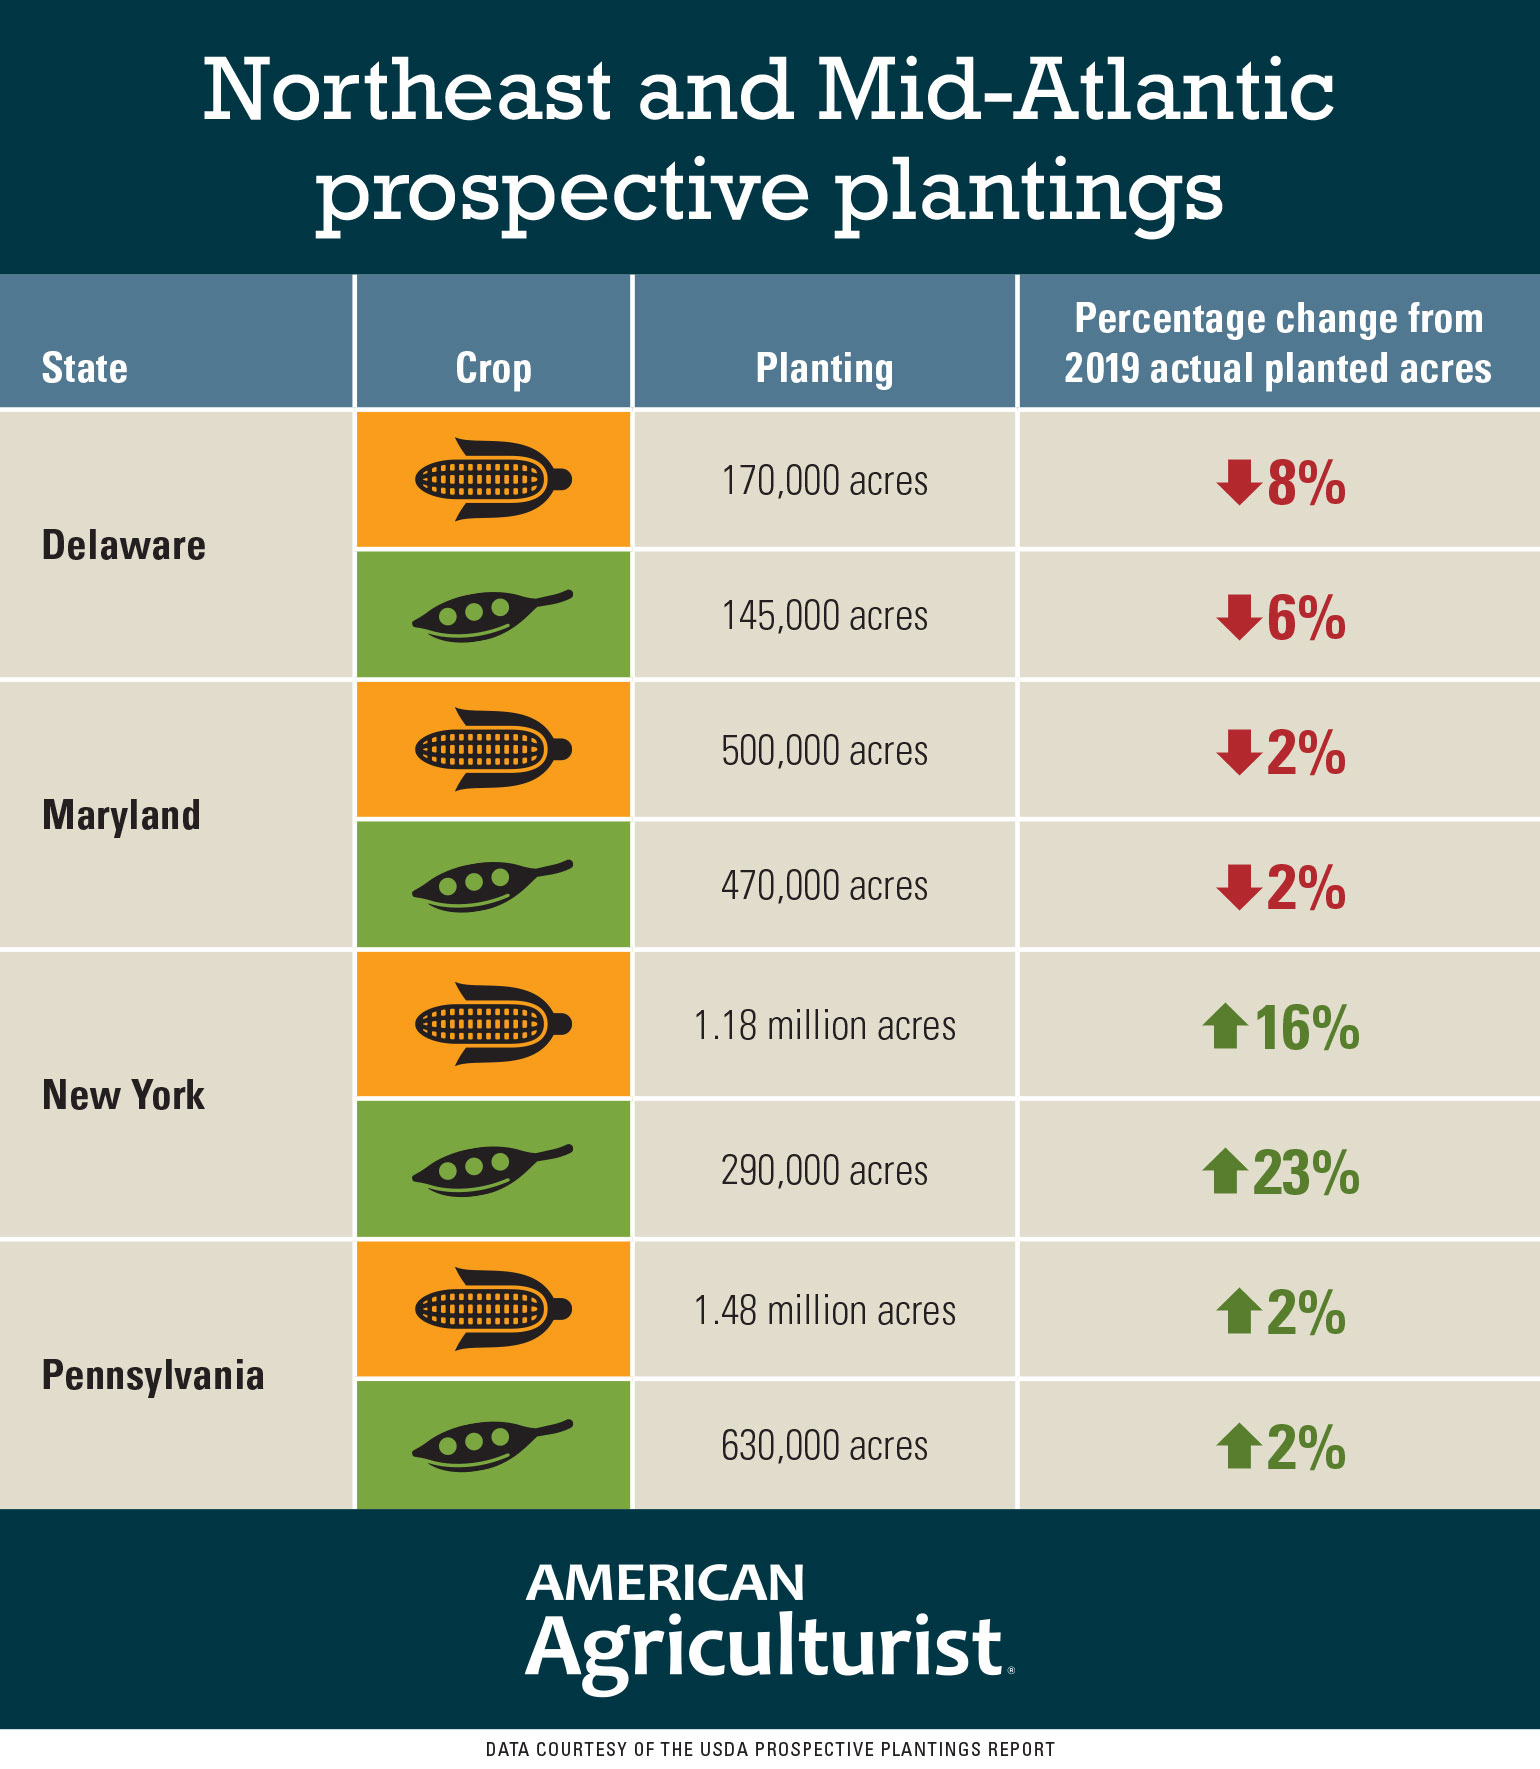 Northeast and Mid-Atlantic prospective plantings for 2020 compared to 2019 actual acres planted